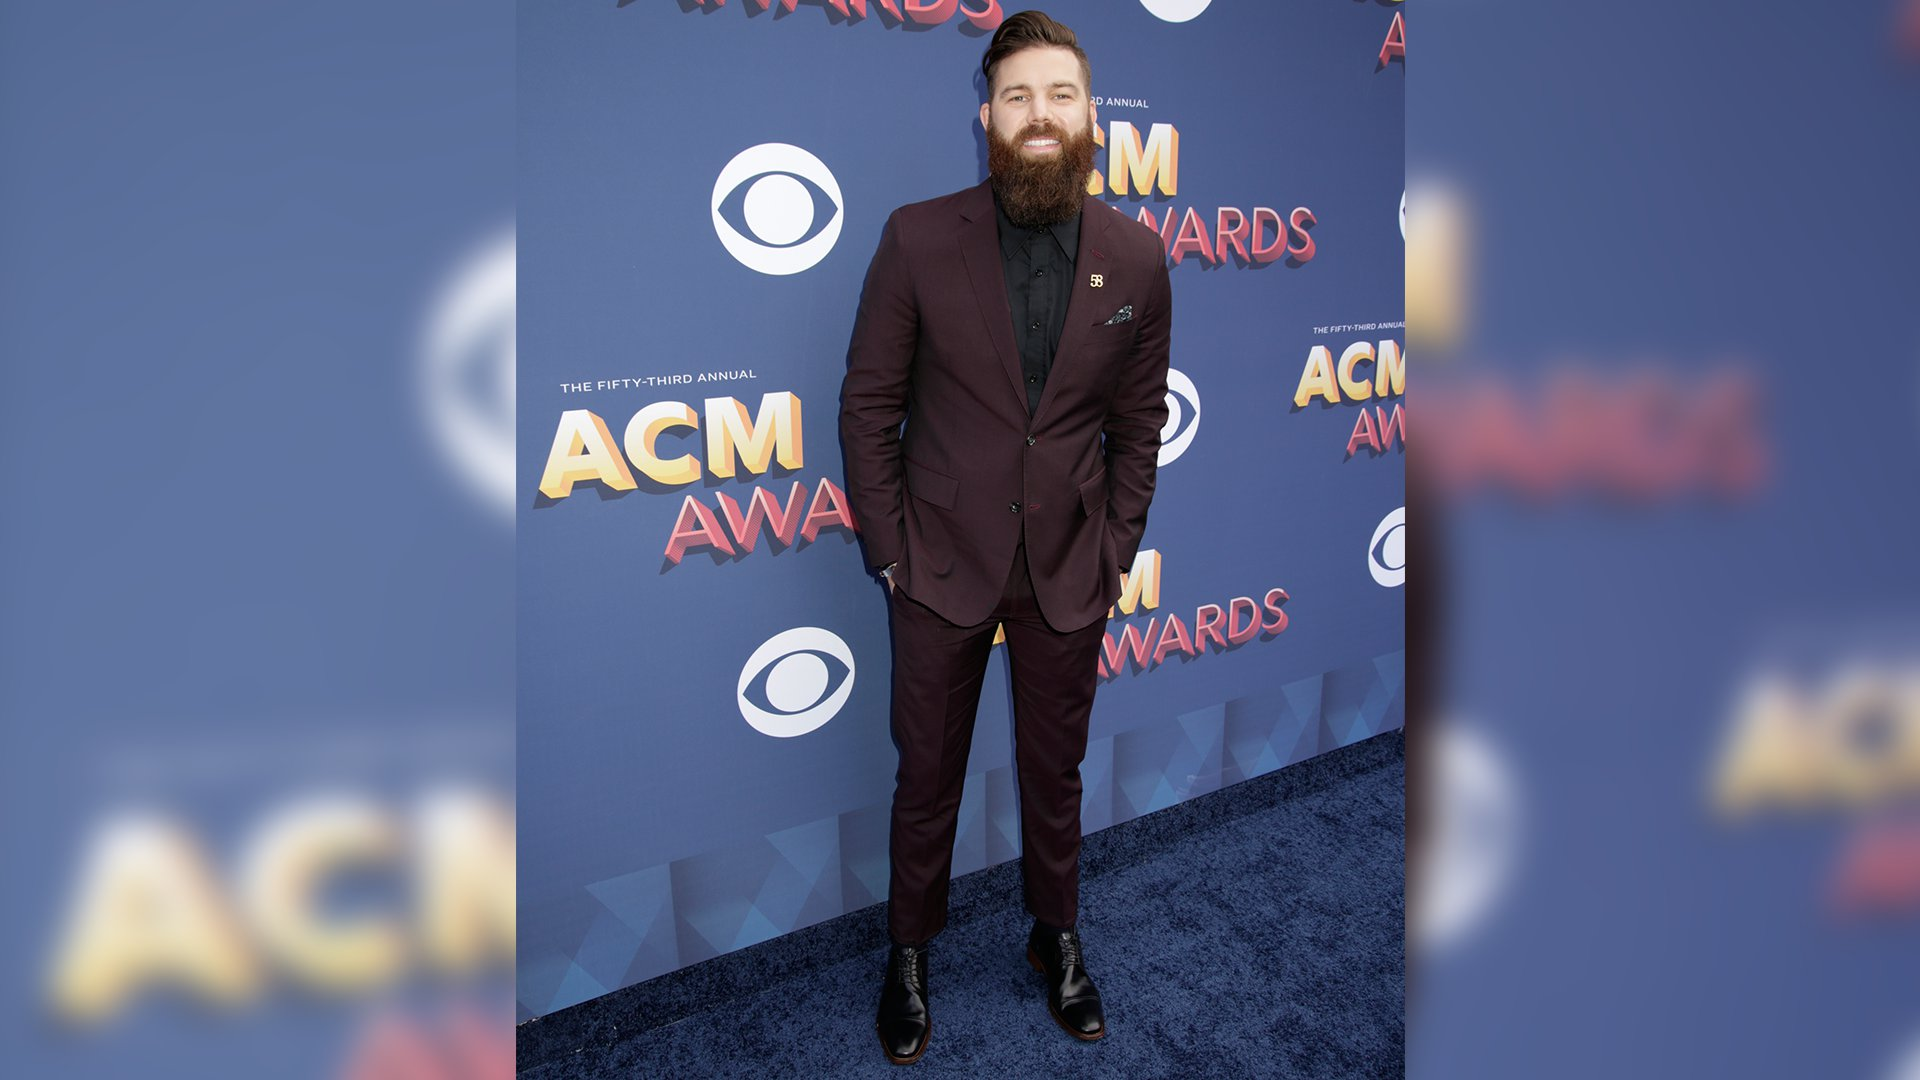 Hot off the recent release of his debut LP, Jordan Davis found time to saunter down the ACM red carpet.